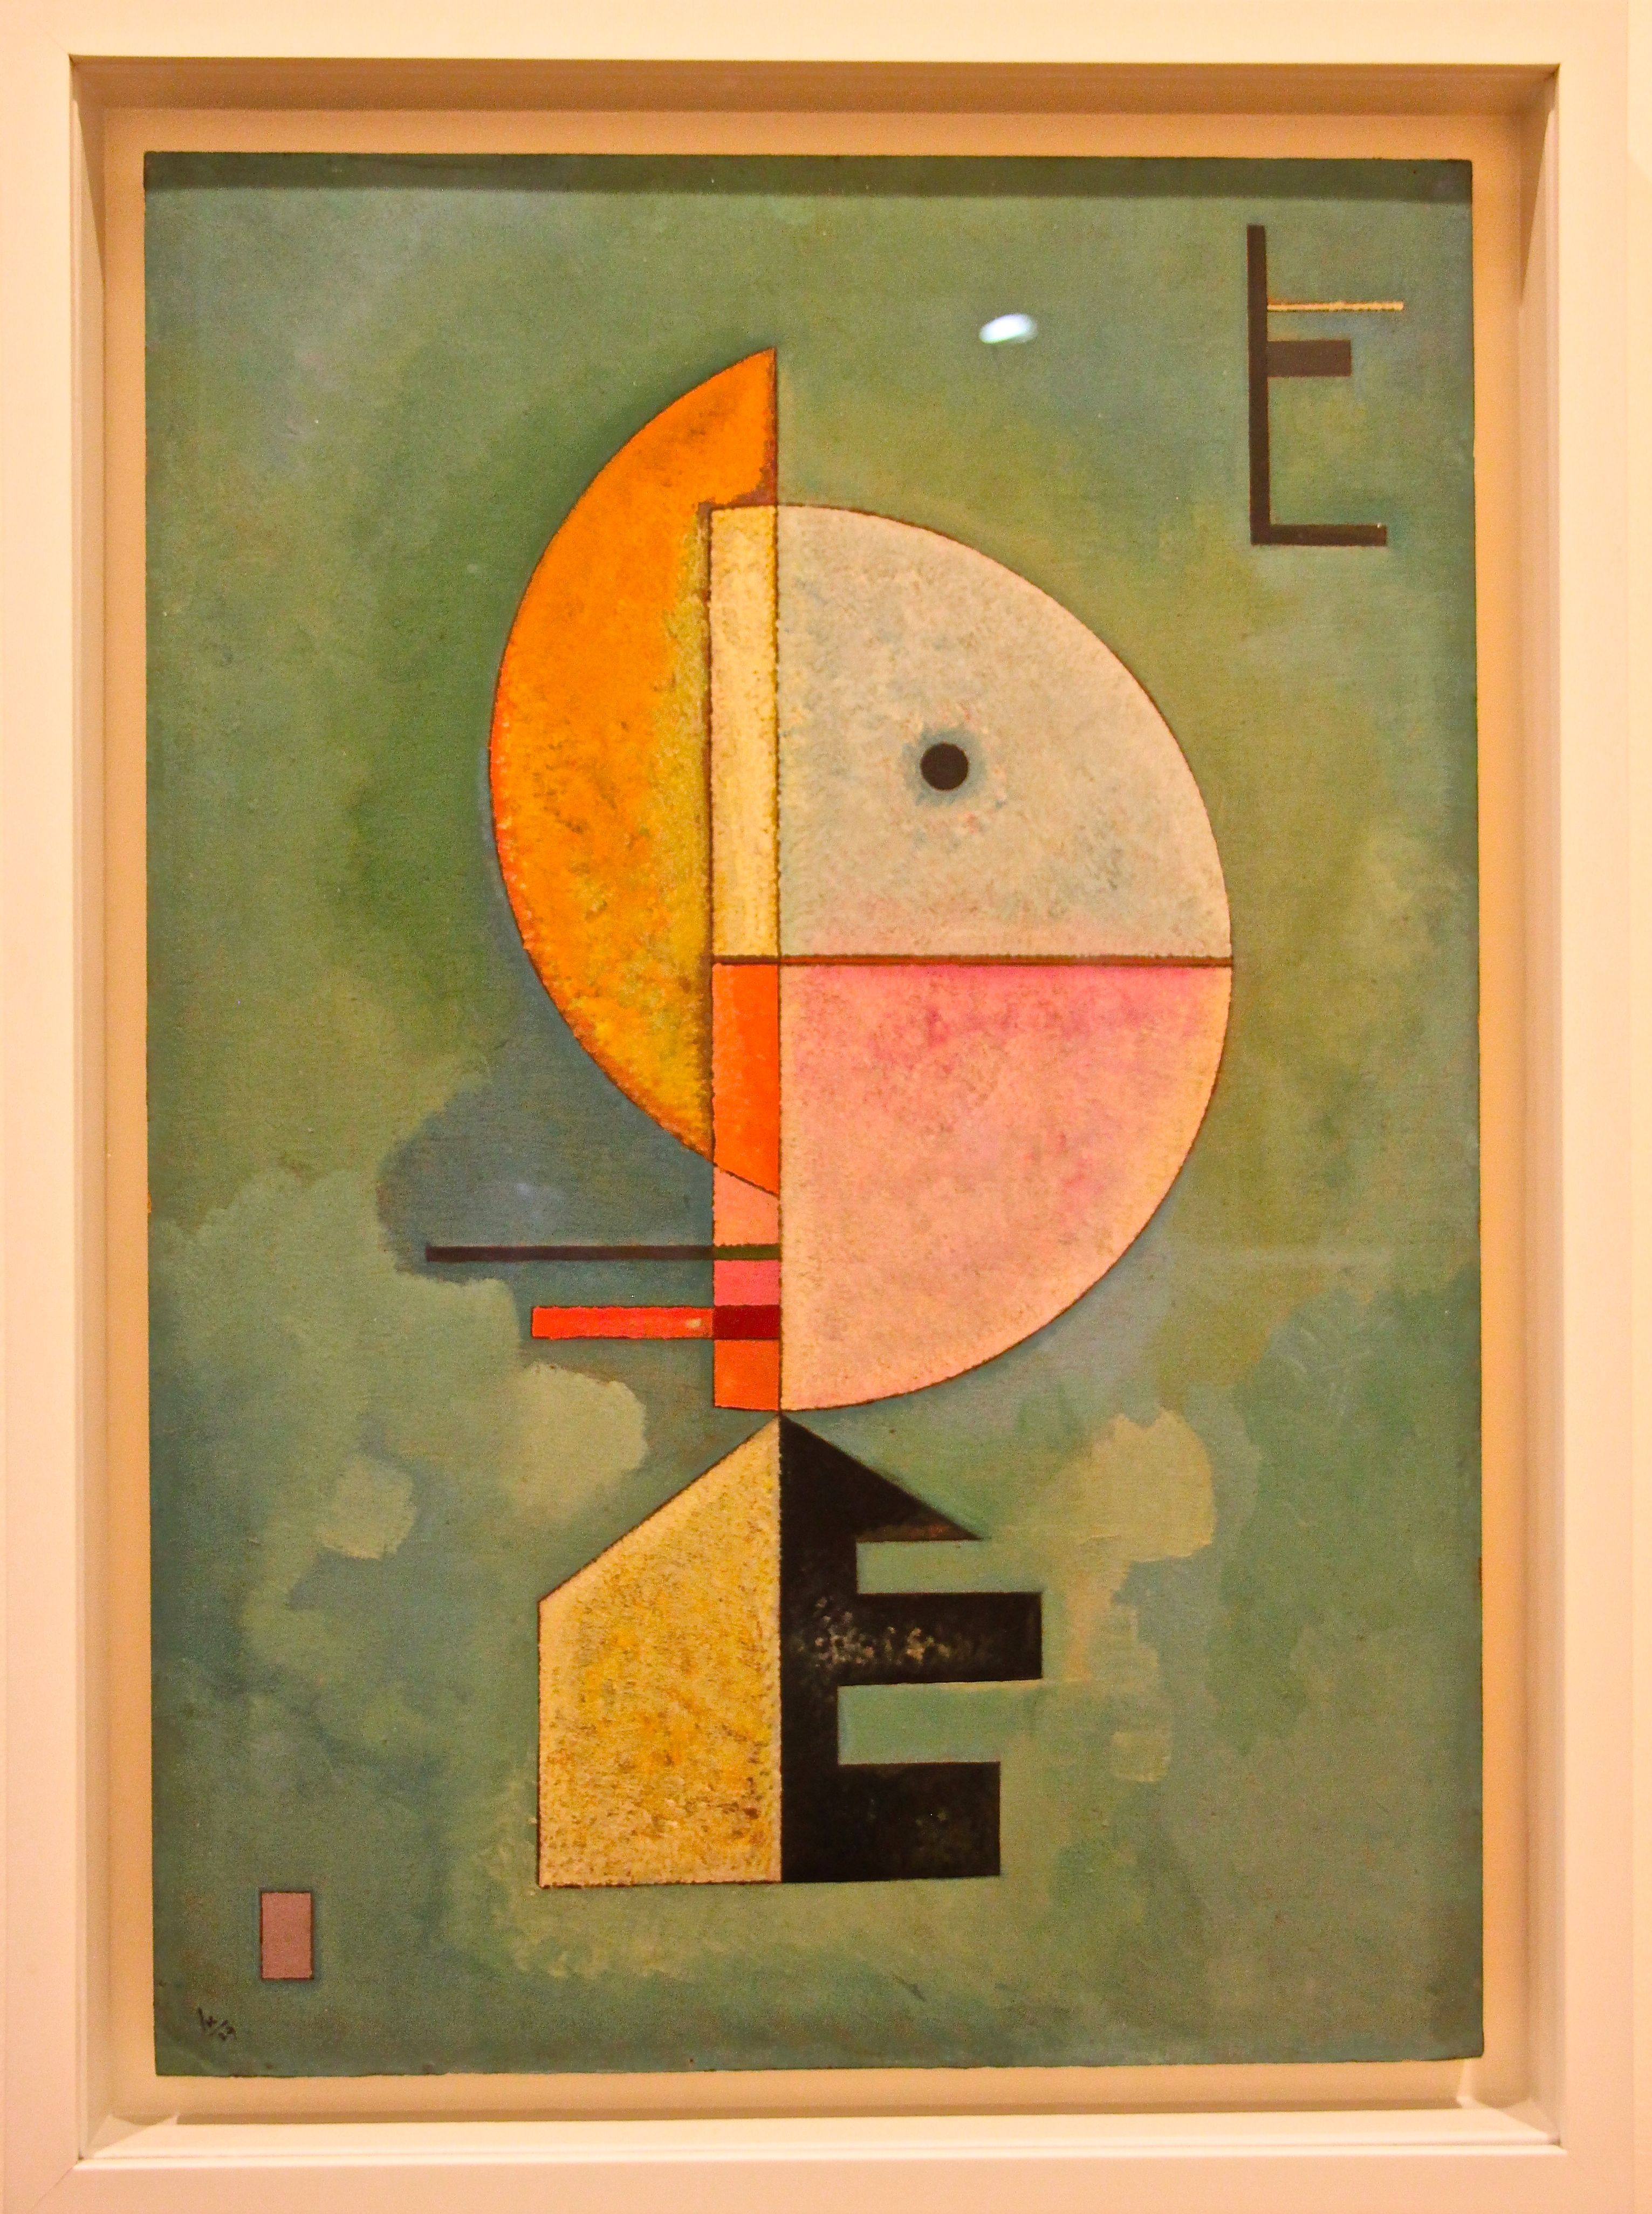 Painting by Russian artist Wassily Wassilyevich Kandinsky who used colour and geometrical shapes to create the first vividly abstract paintings. Peggy Guggenheim Museum, Venice